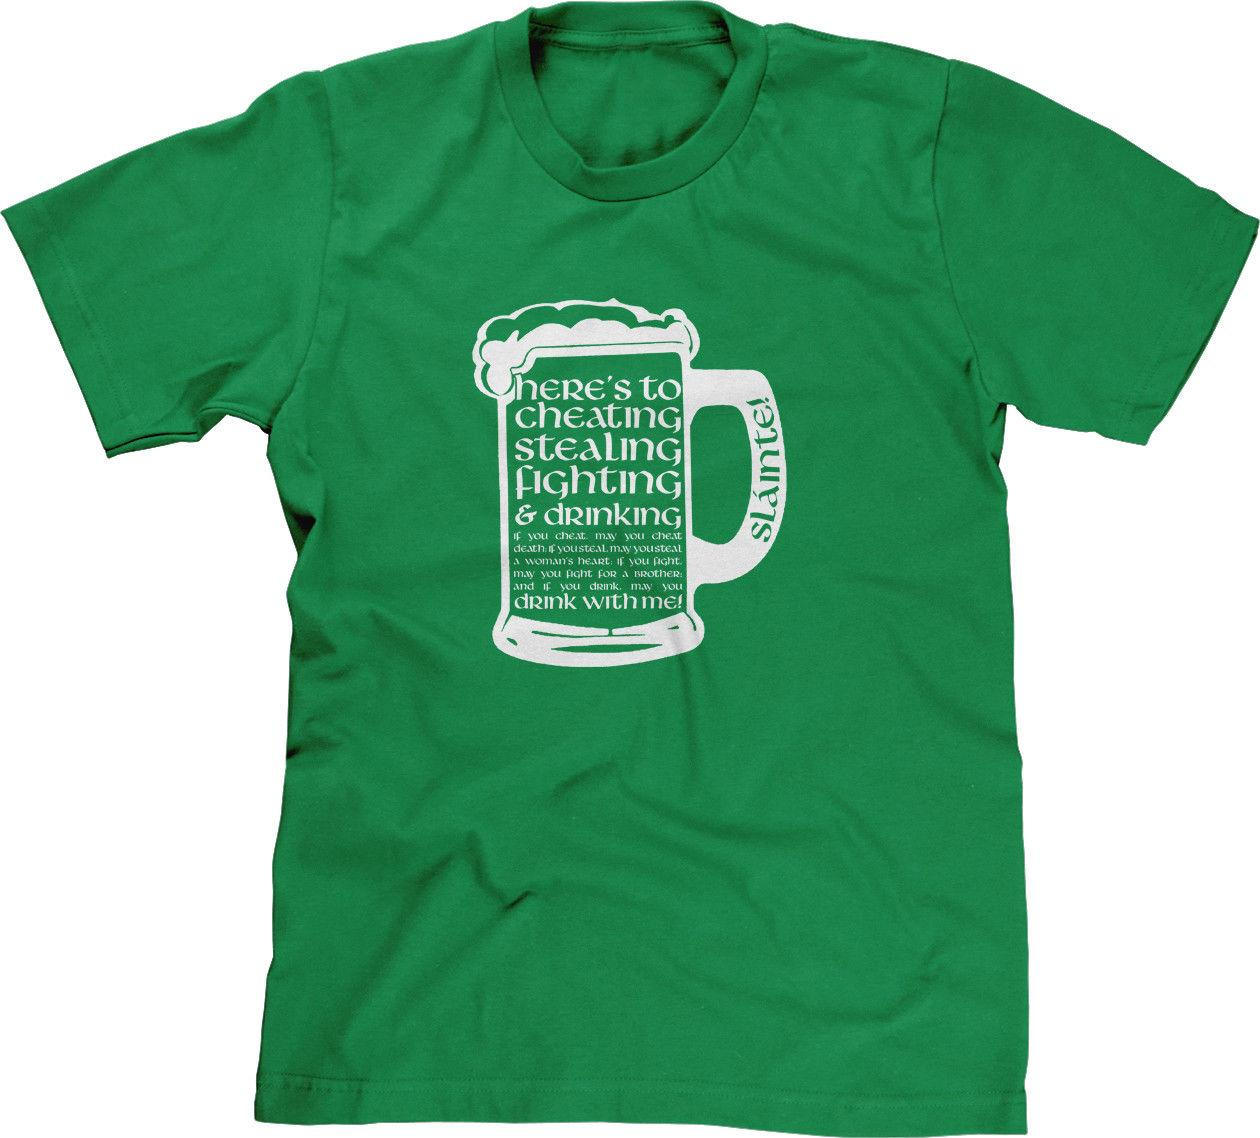 a9519c231c Irish Toast Cheating Stealing Fighting Drinking St Patricks Day Slainte  Mens Tee Unisex Casual Tshirt Top Awesome Shirts Cool T Shirts For Men From  ...